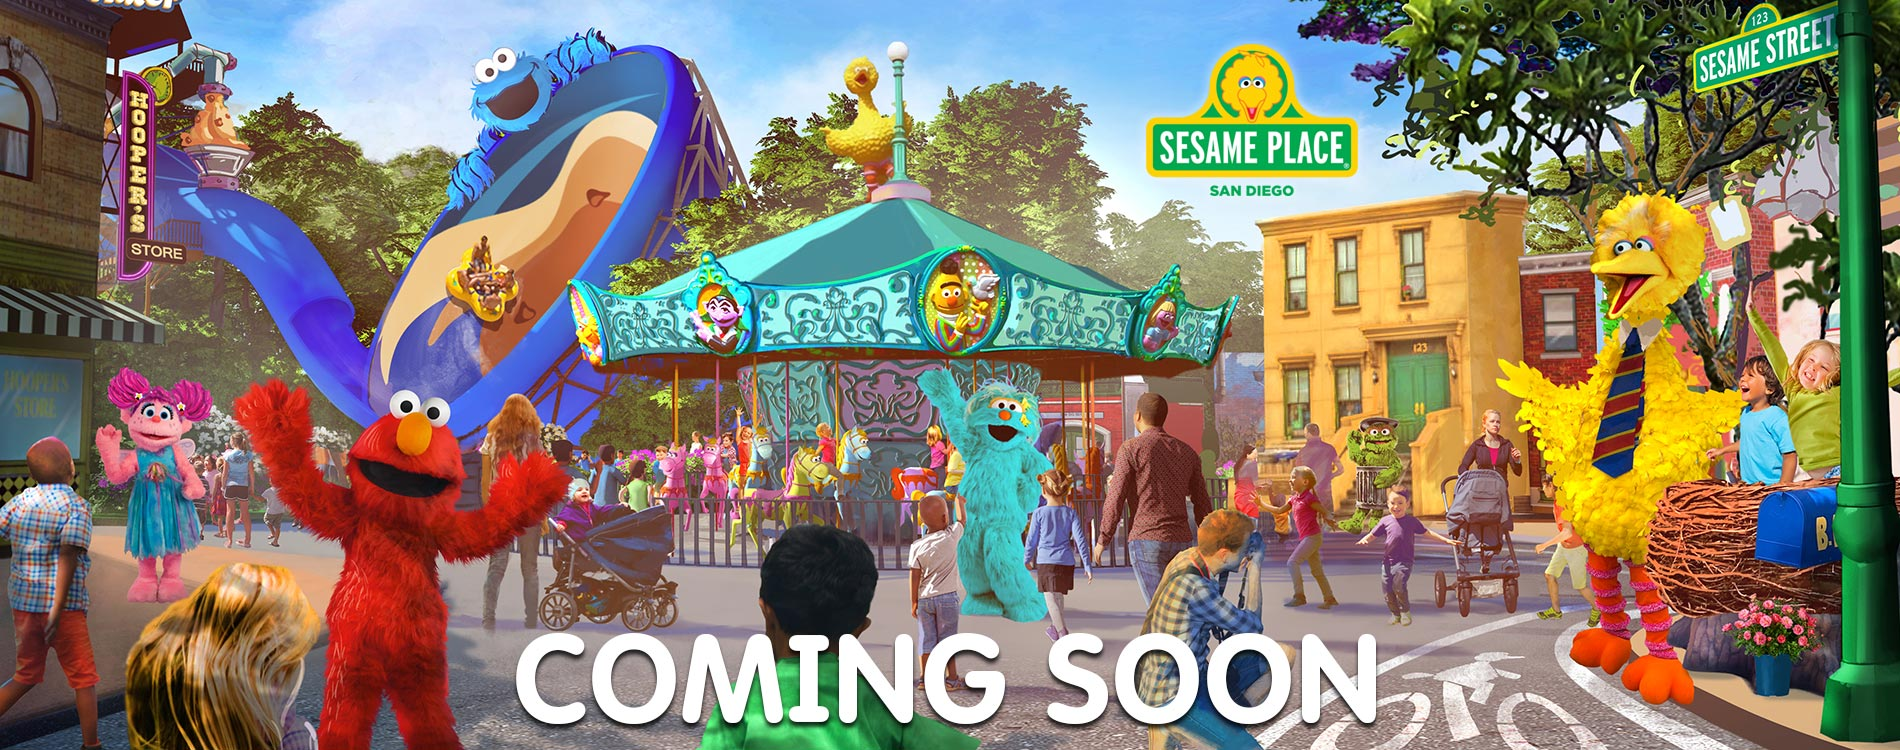 Sesame Place coming to San Diego!